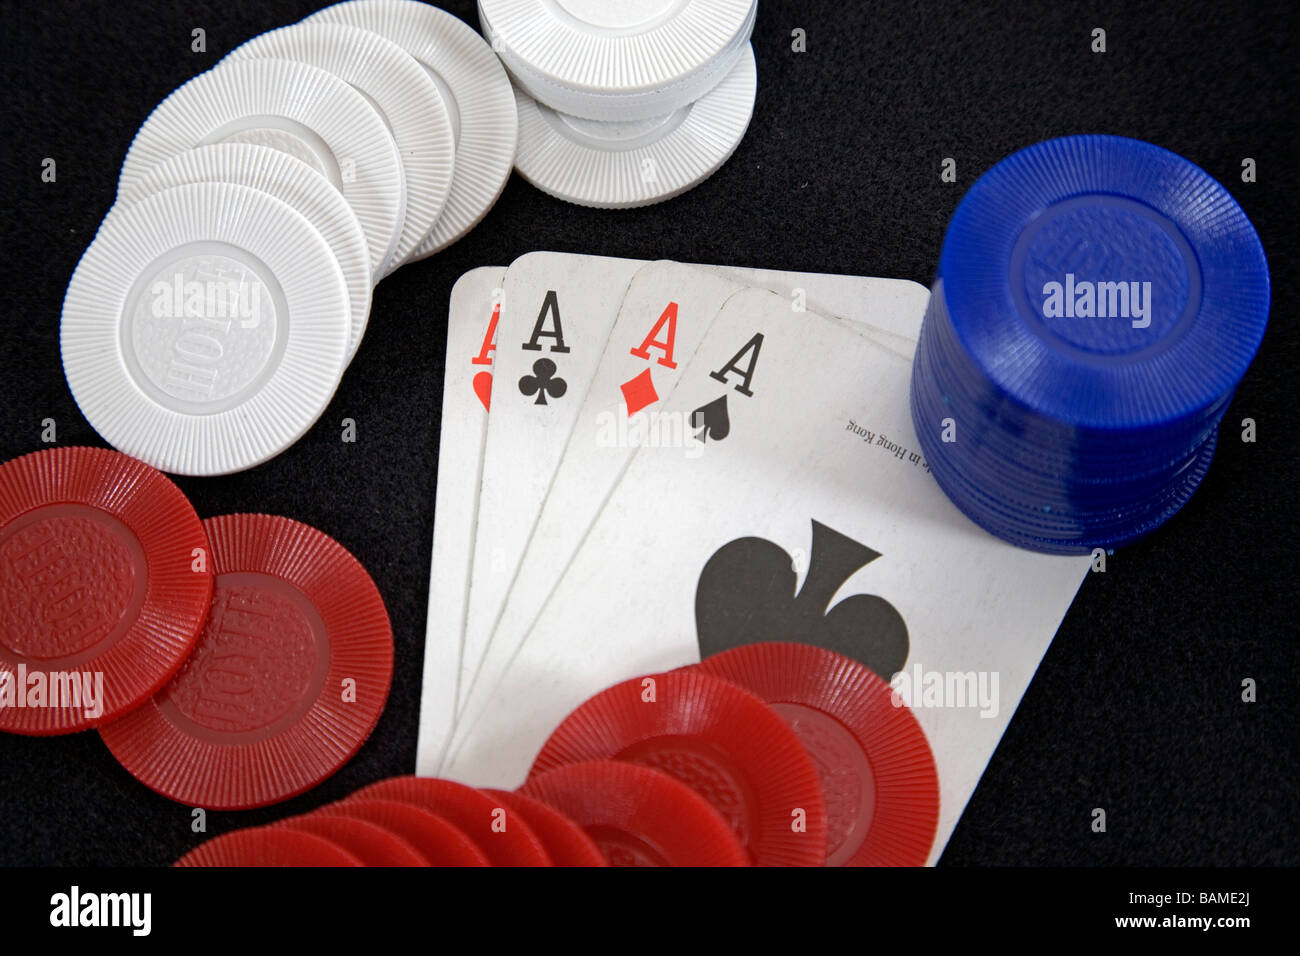 Four aces a winning poker hand in draw or stud poker with poker chips - Stock Image